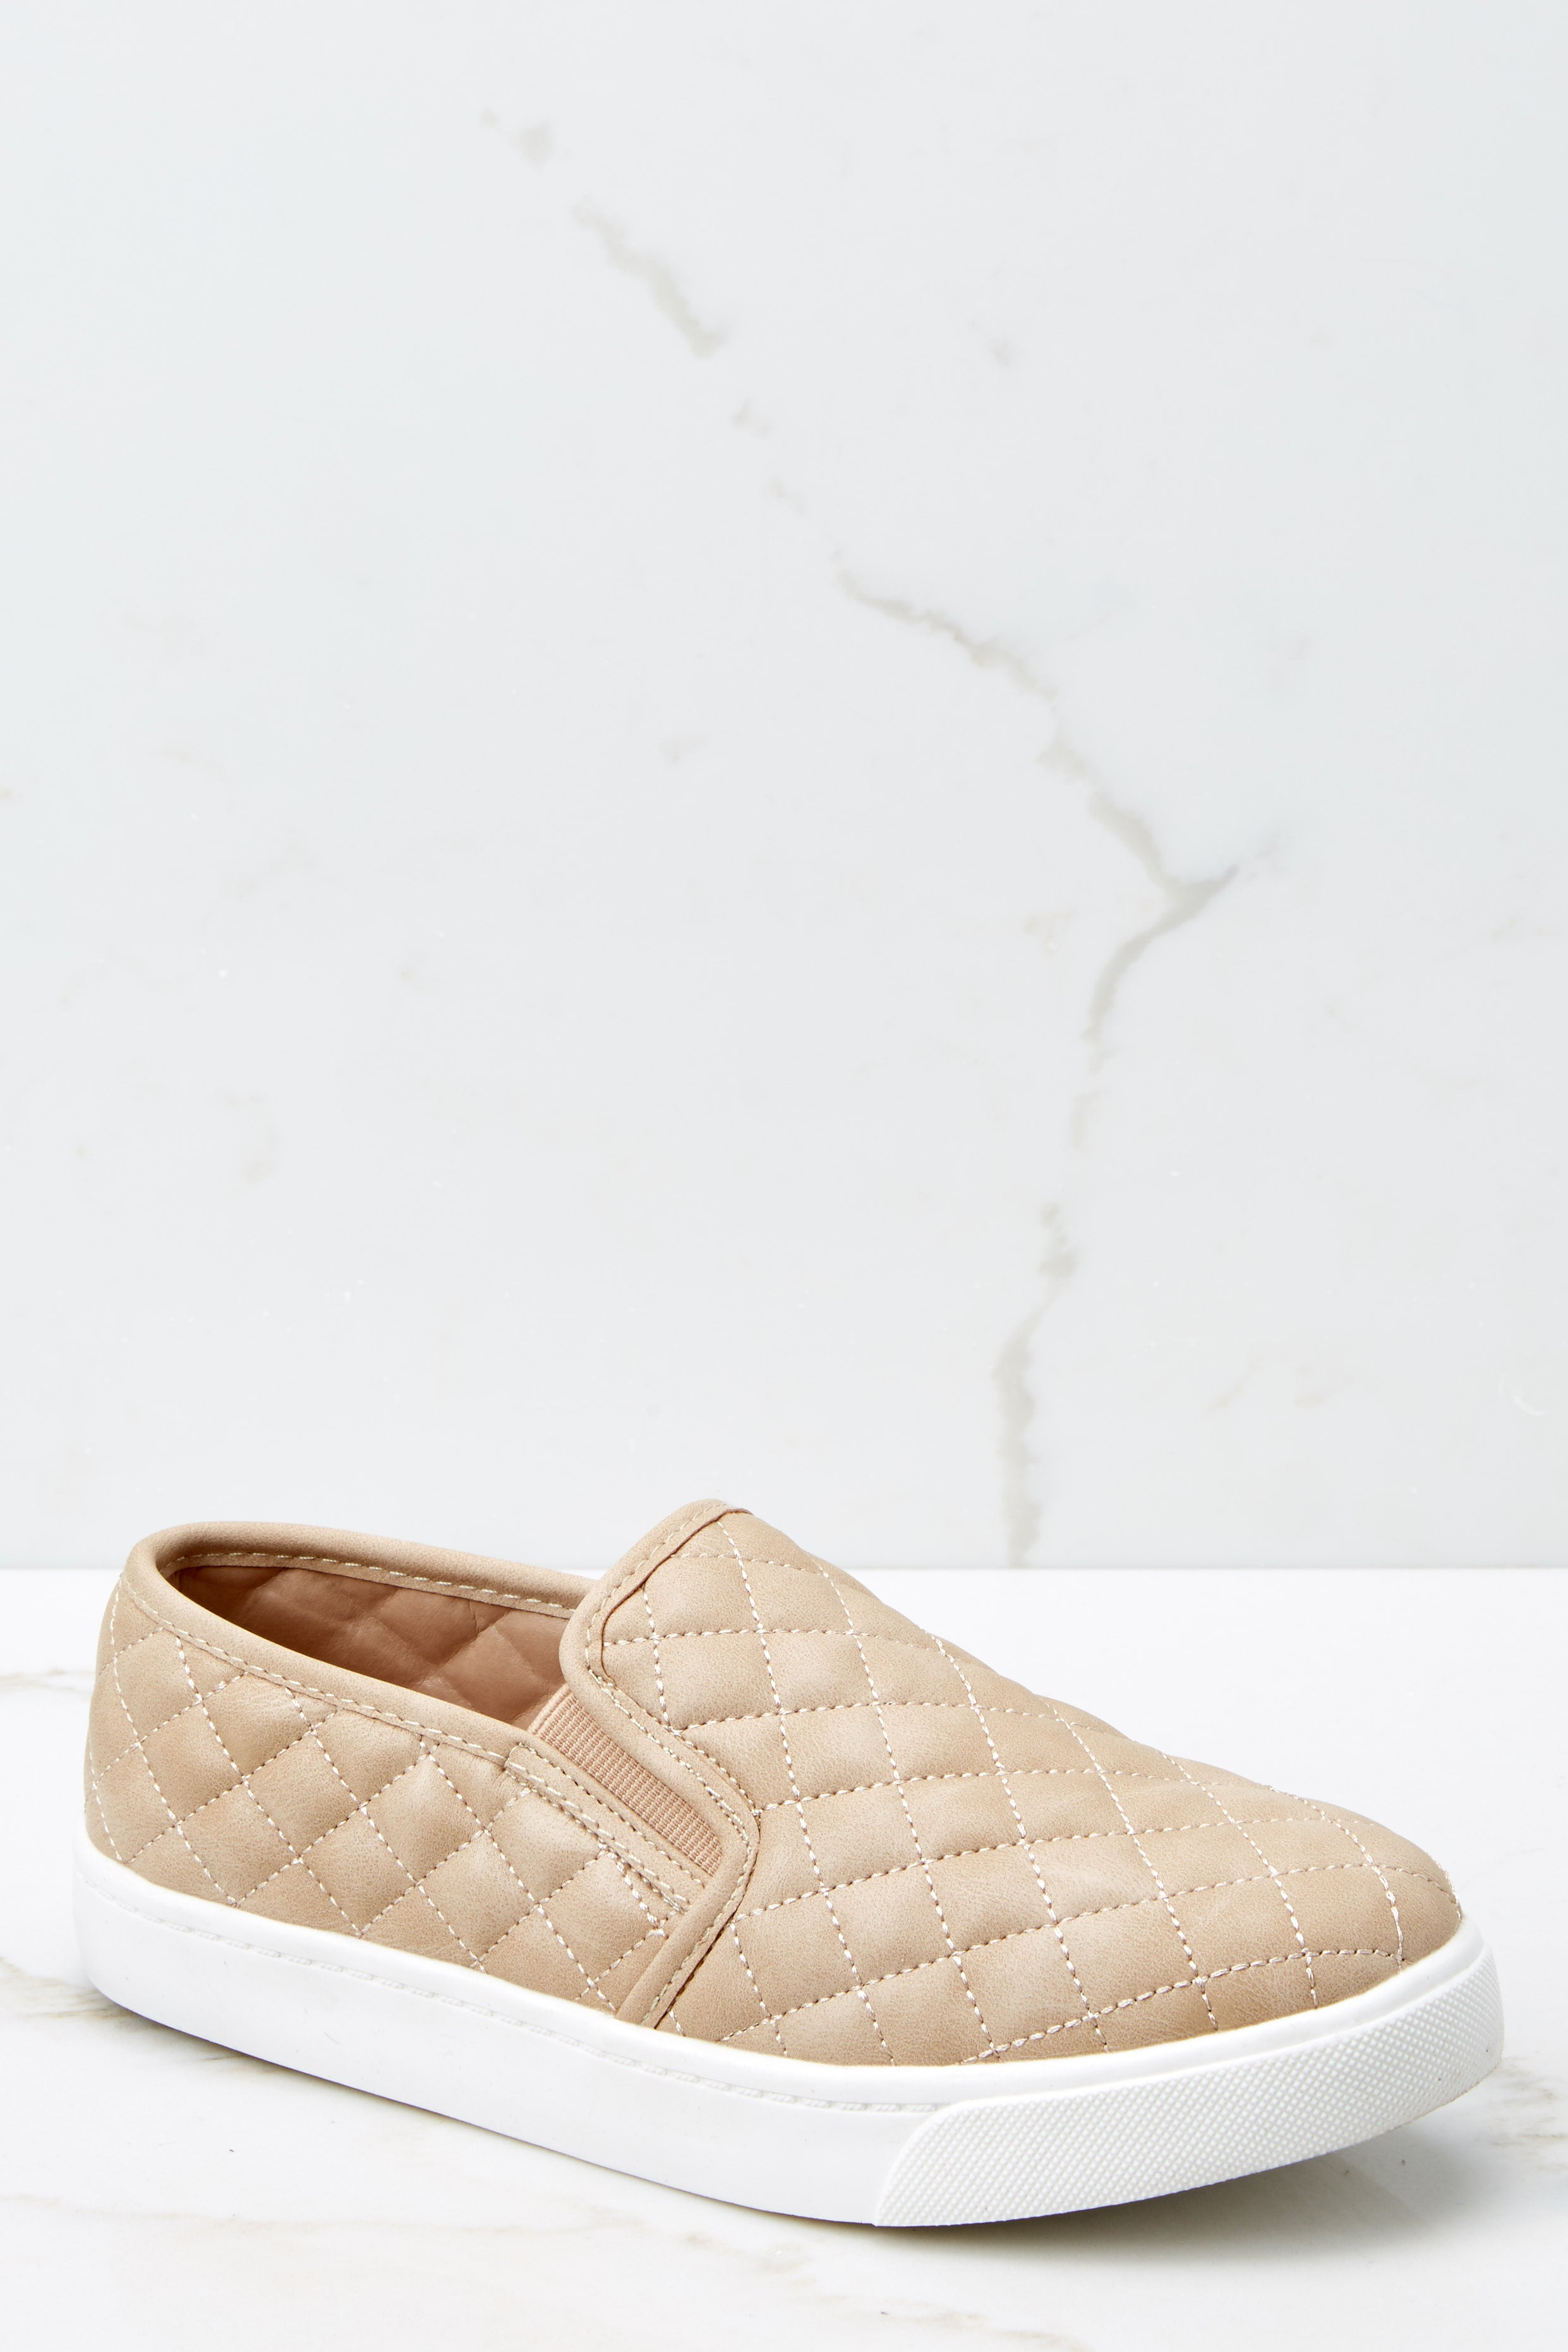 1 Passing Expectations Beige Slip On Sneakers at reddressboutique.com